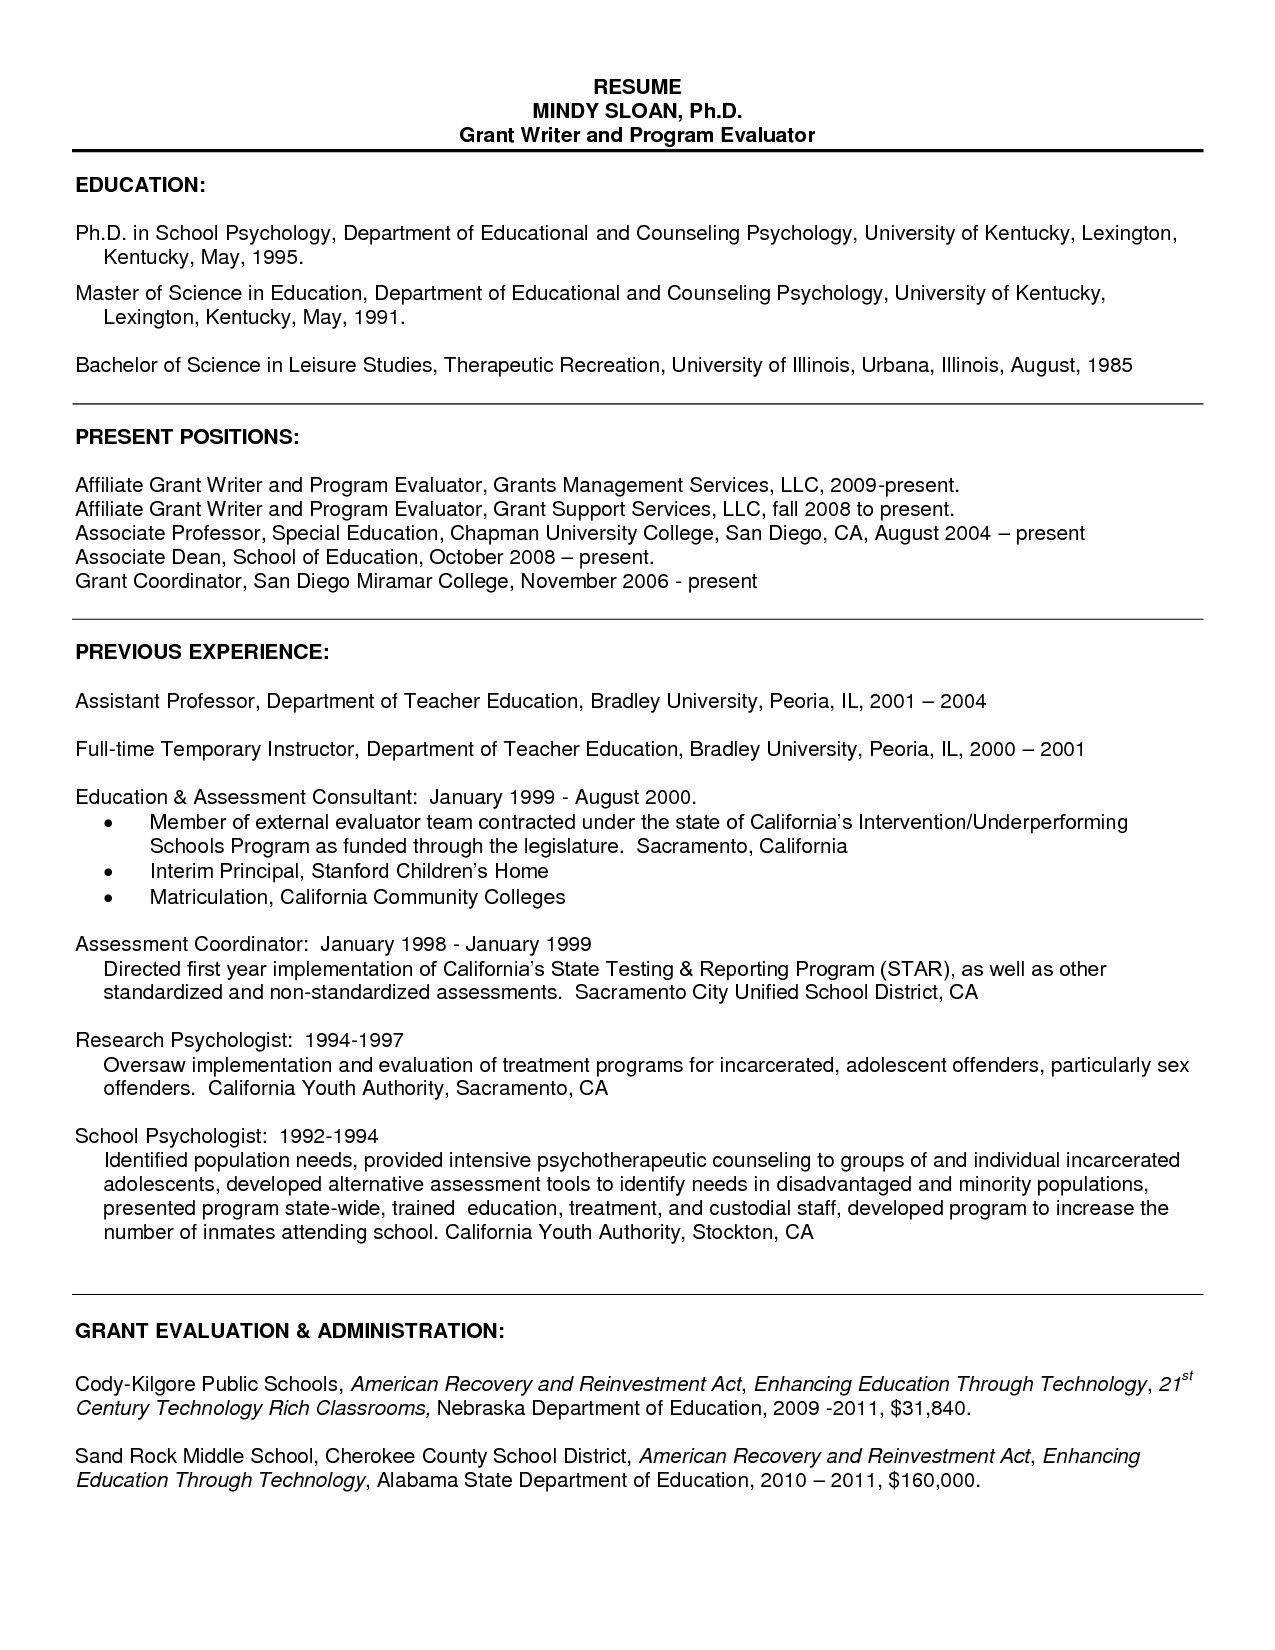 assistant manager resume template jobresumesample resume sample for psychology graduate are examples we provide as reference to make correct and good quality resume also will give ideas and strategies to